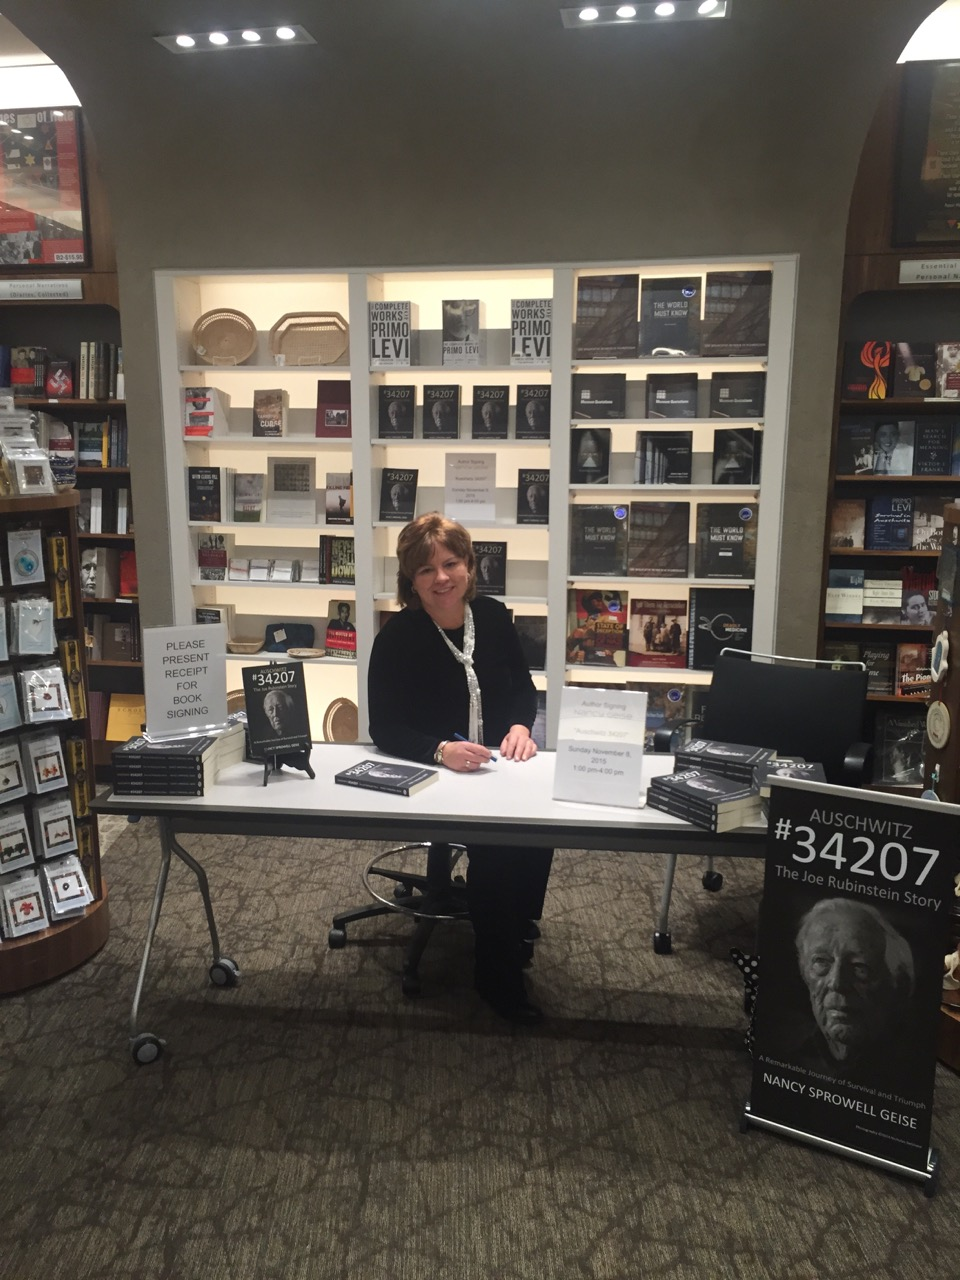 Book Signing at United States Holocaust Memorial Museum, Washington, D.C. (2015)